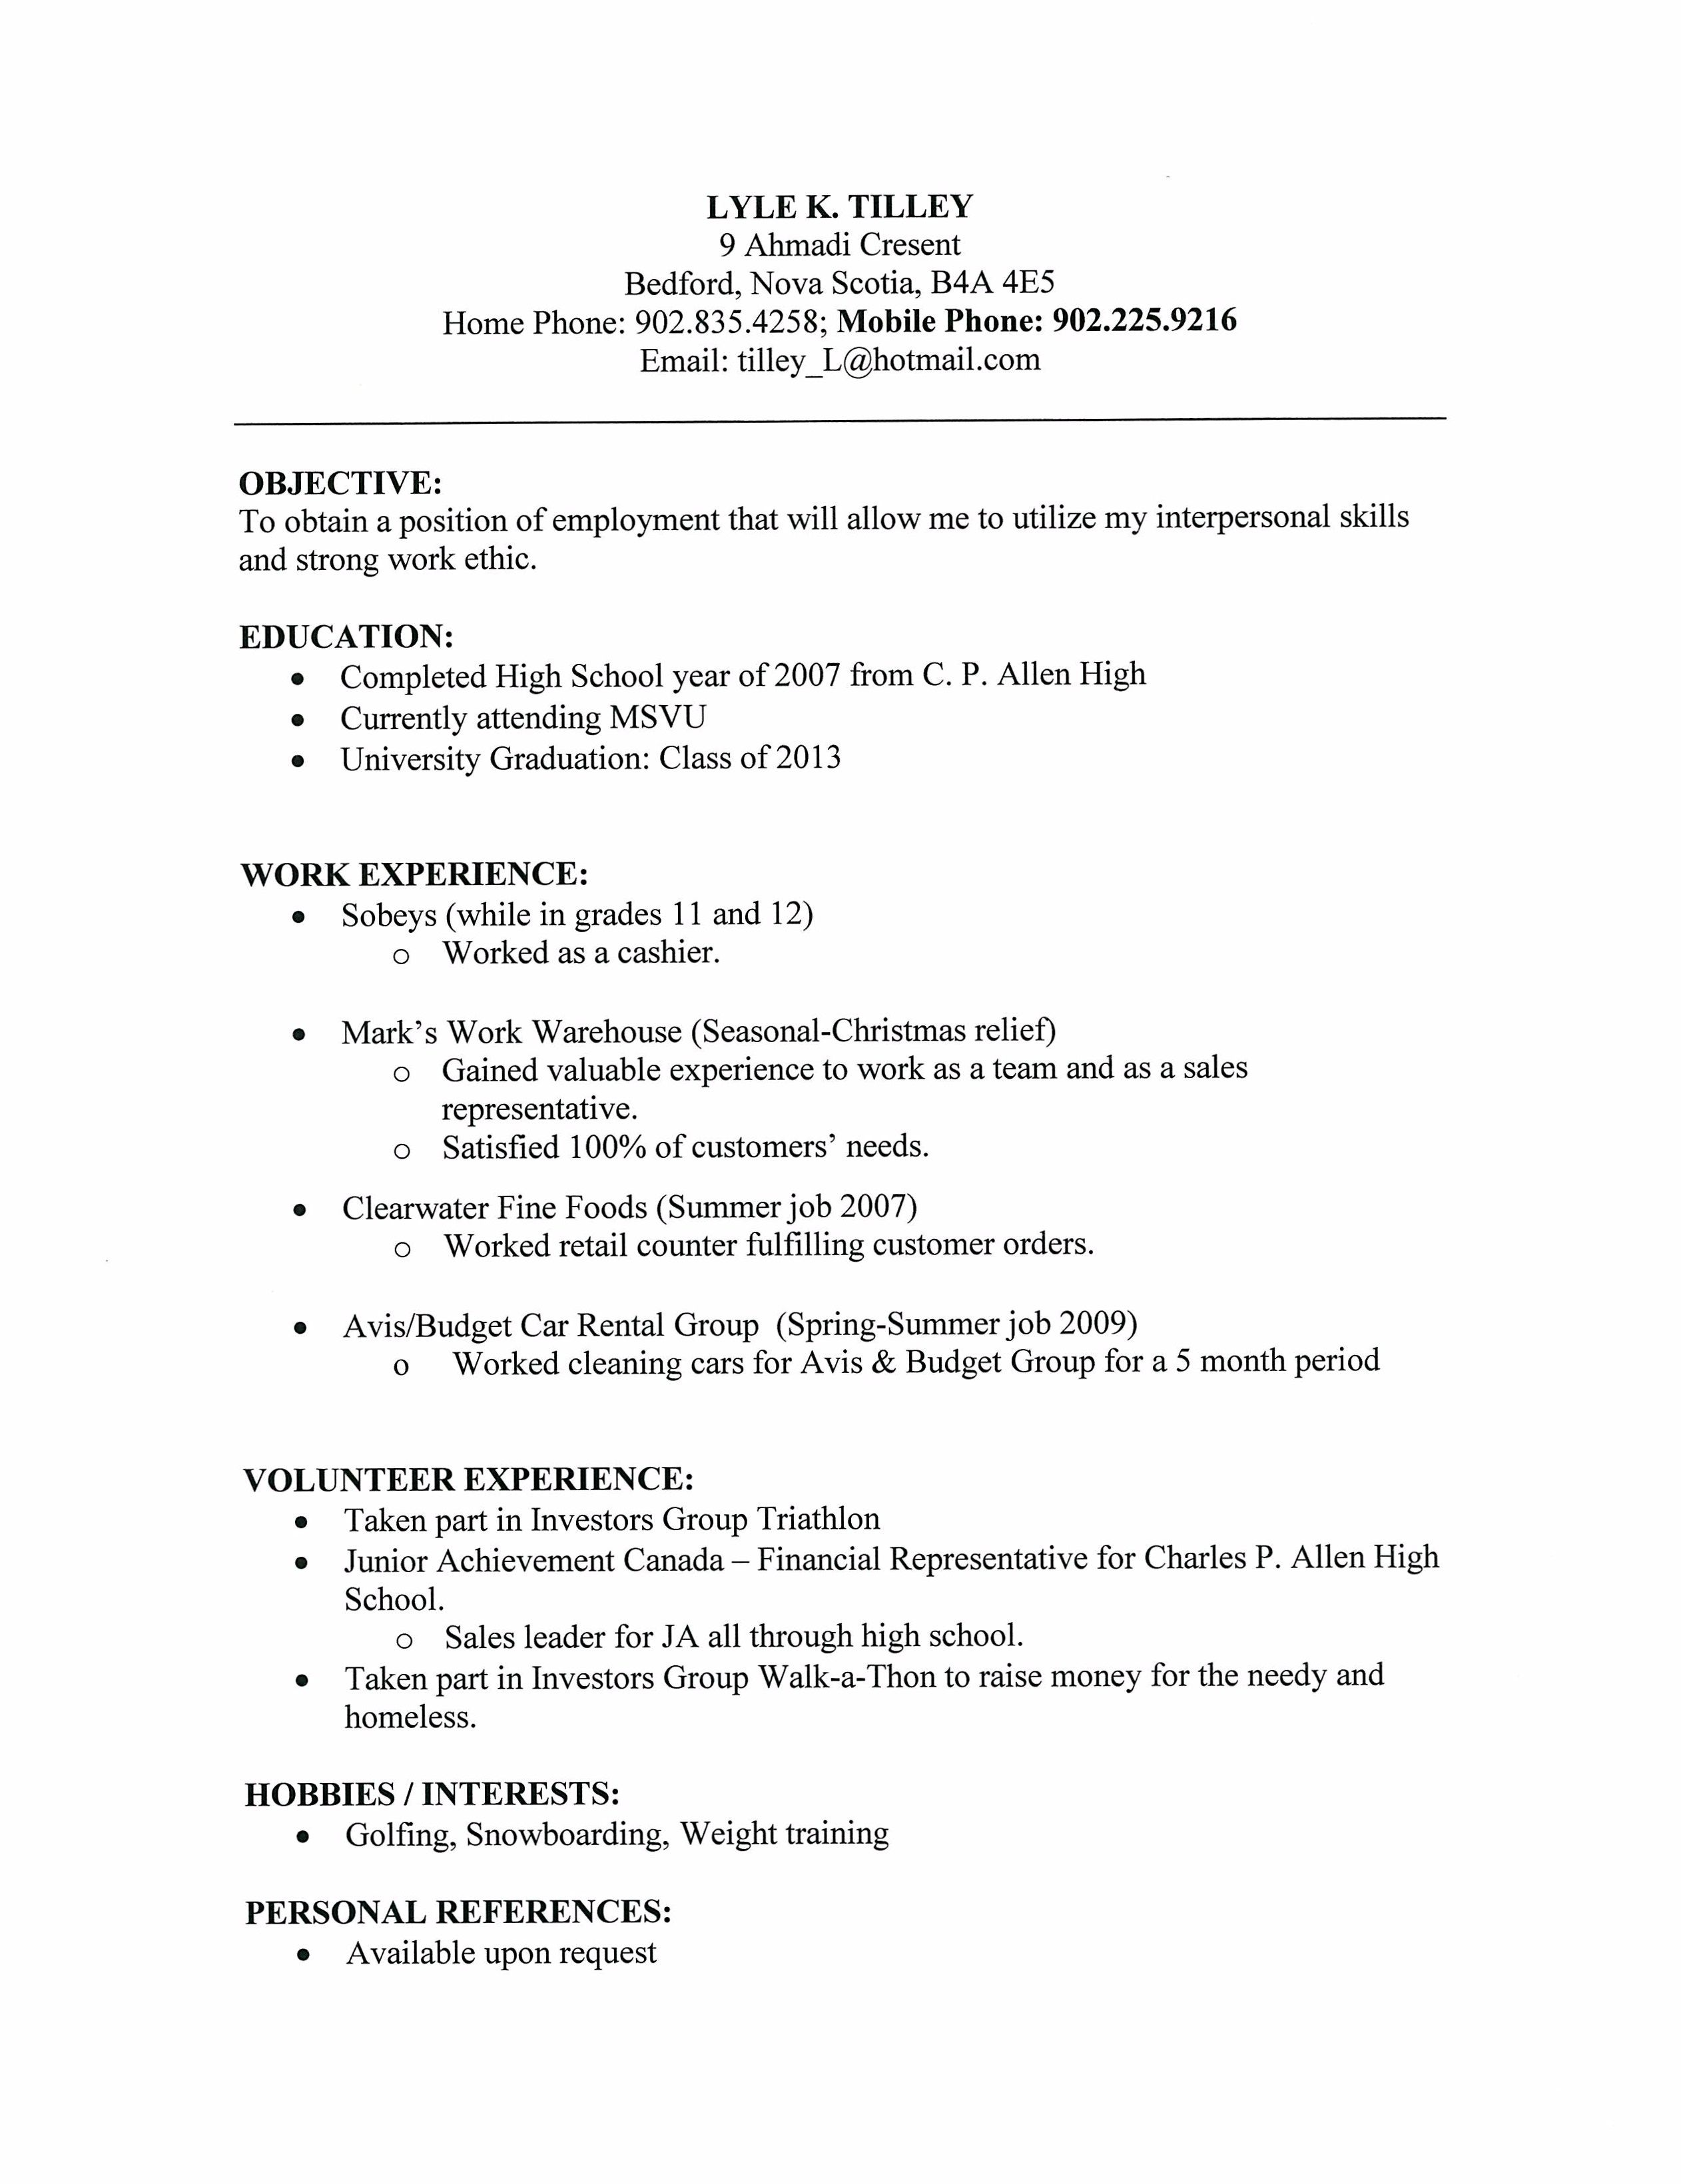 Resume Letter The Cover Letter Tips Resume Template Letters For High School